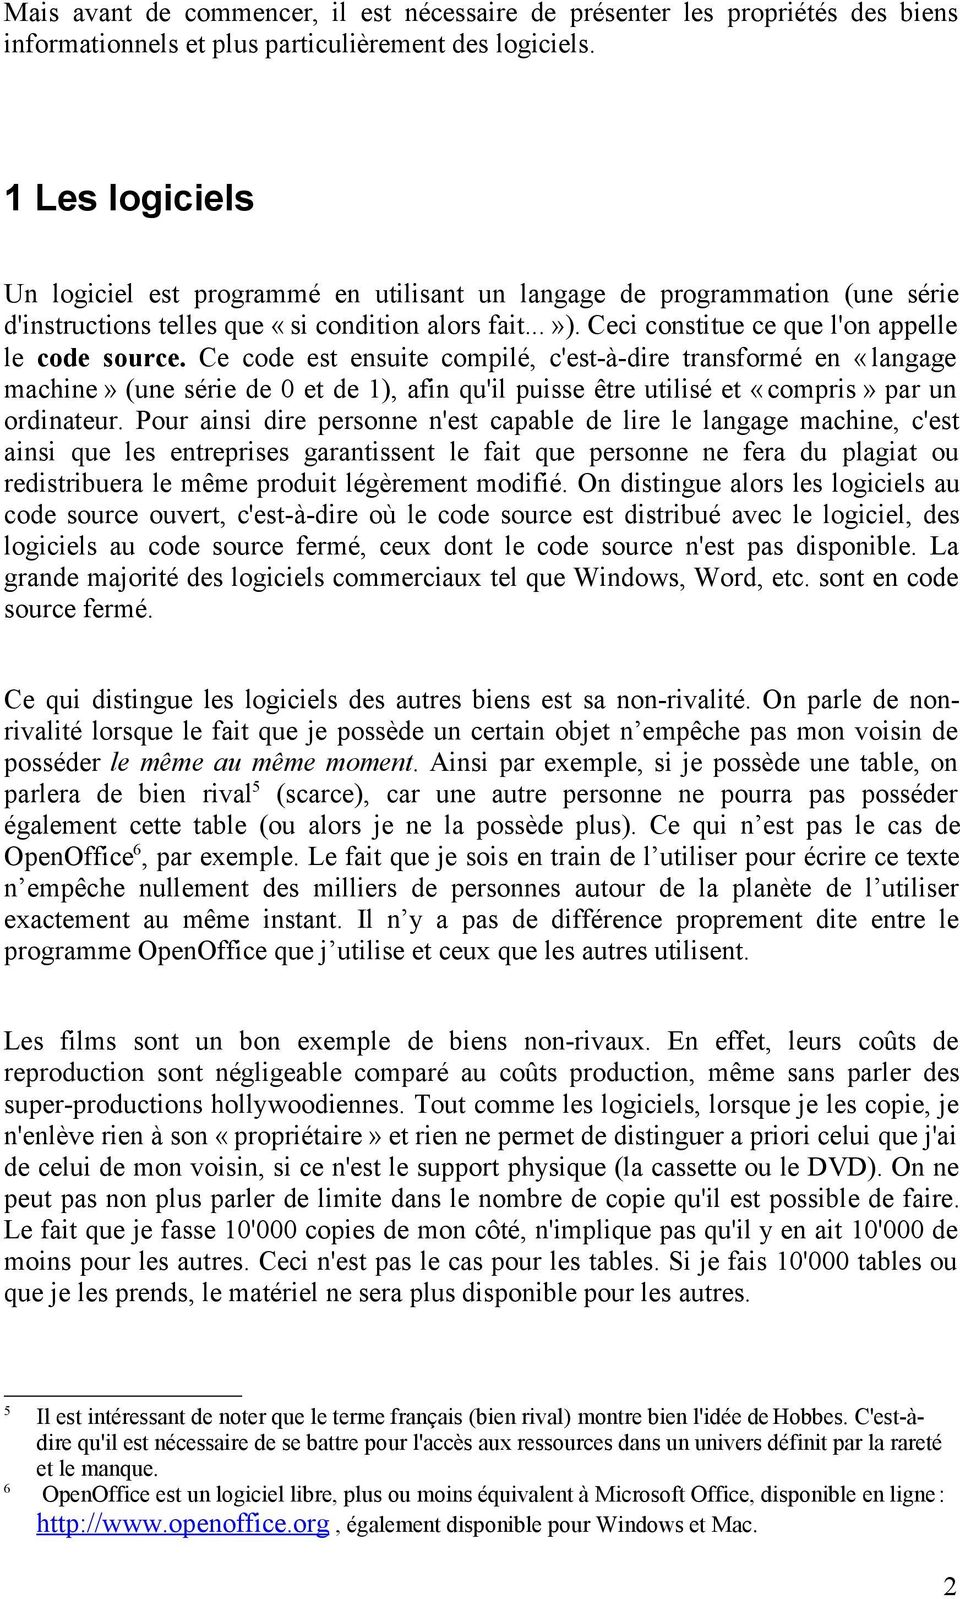 Ceci constitue ce que l'on appelle le code source.